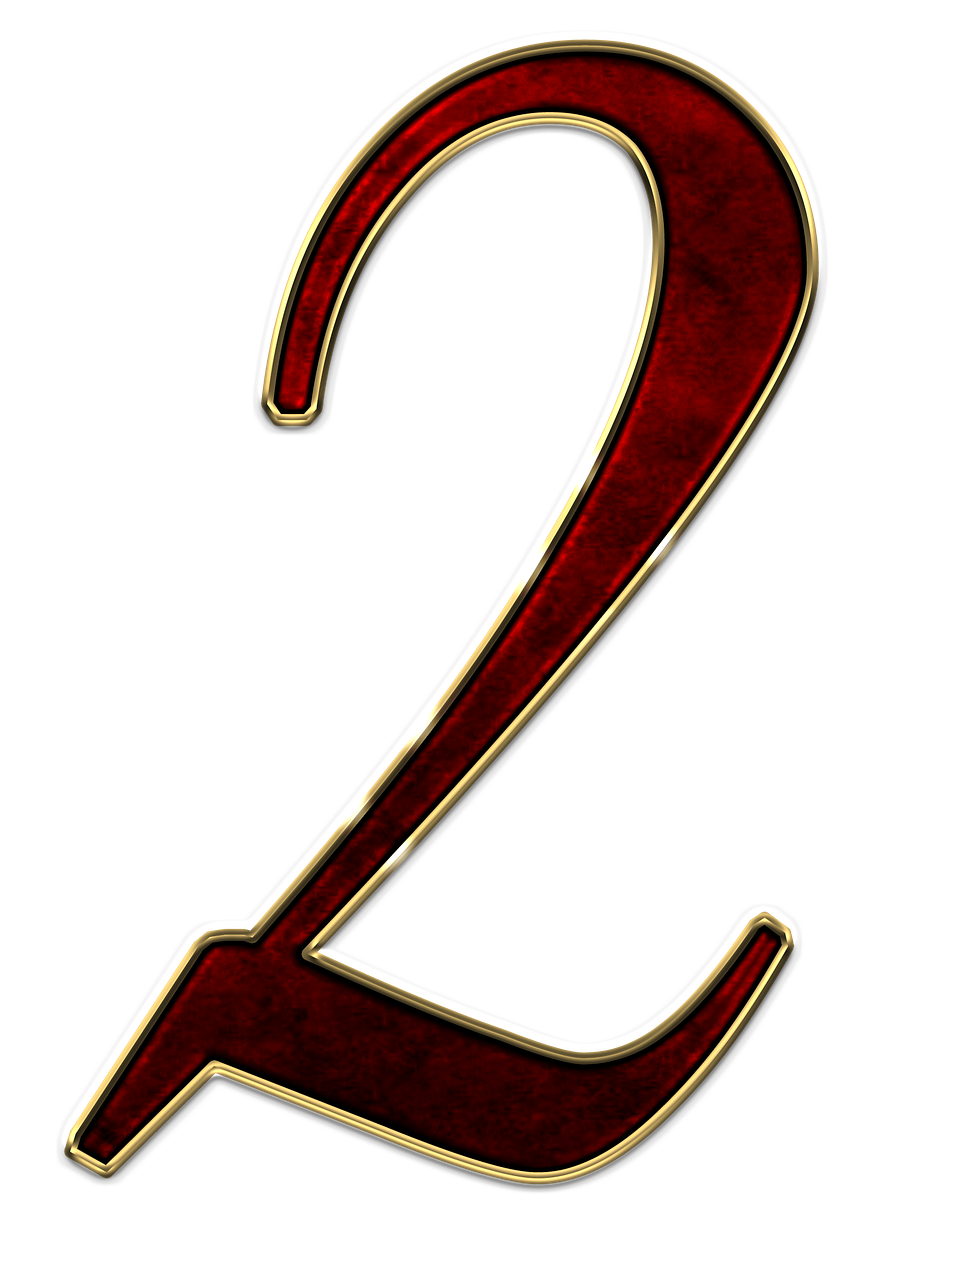 2 two- numbers from 1 to 10 images for printing, part 11